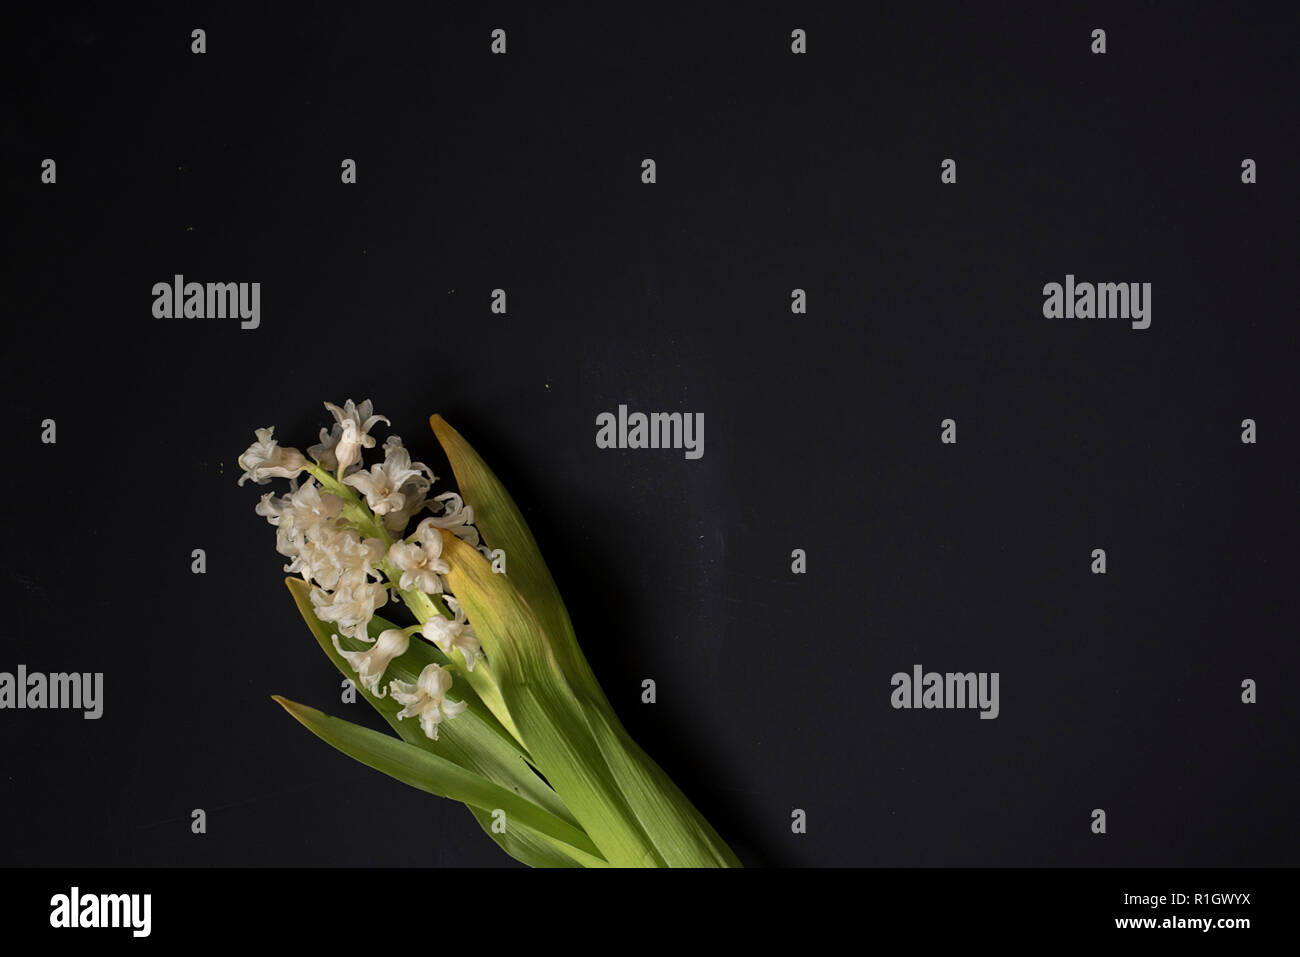 Somber Floral Wabi Sabi: White Hyacinths Curling on a Dark Background with plenty of room for copy - Stock Image